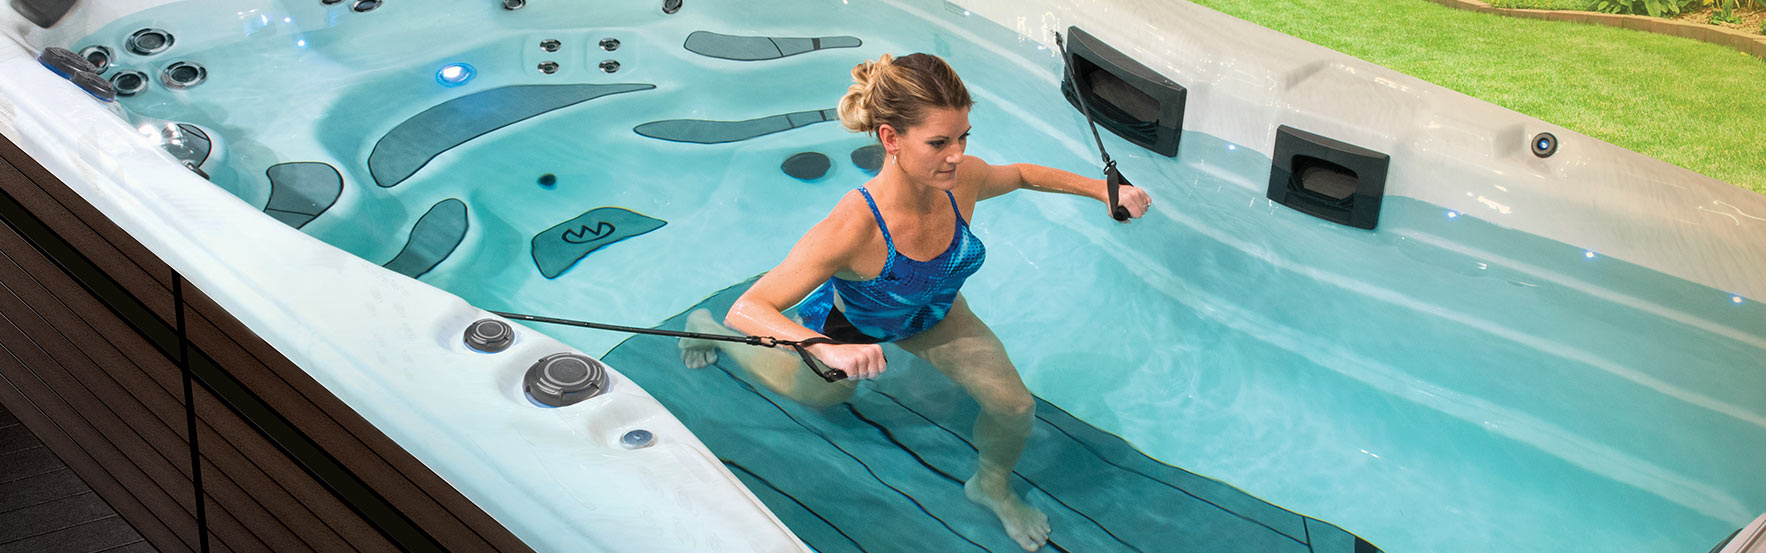 exercising in a swim spa prevents leaving the privacy of your backyard to work out at the gym